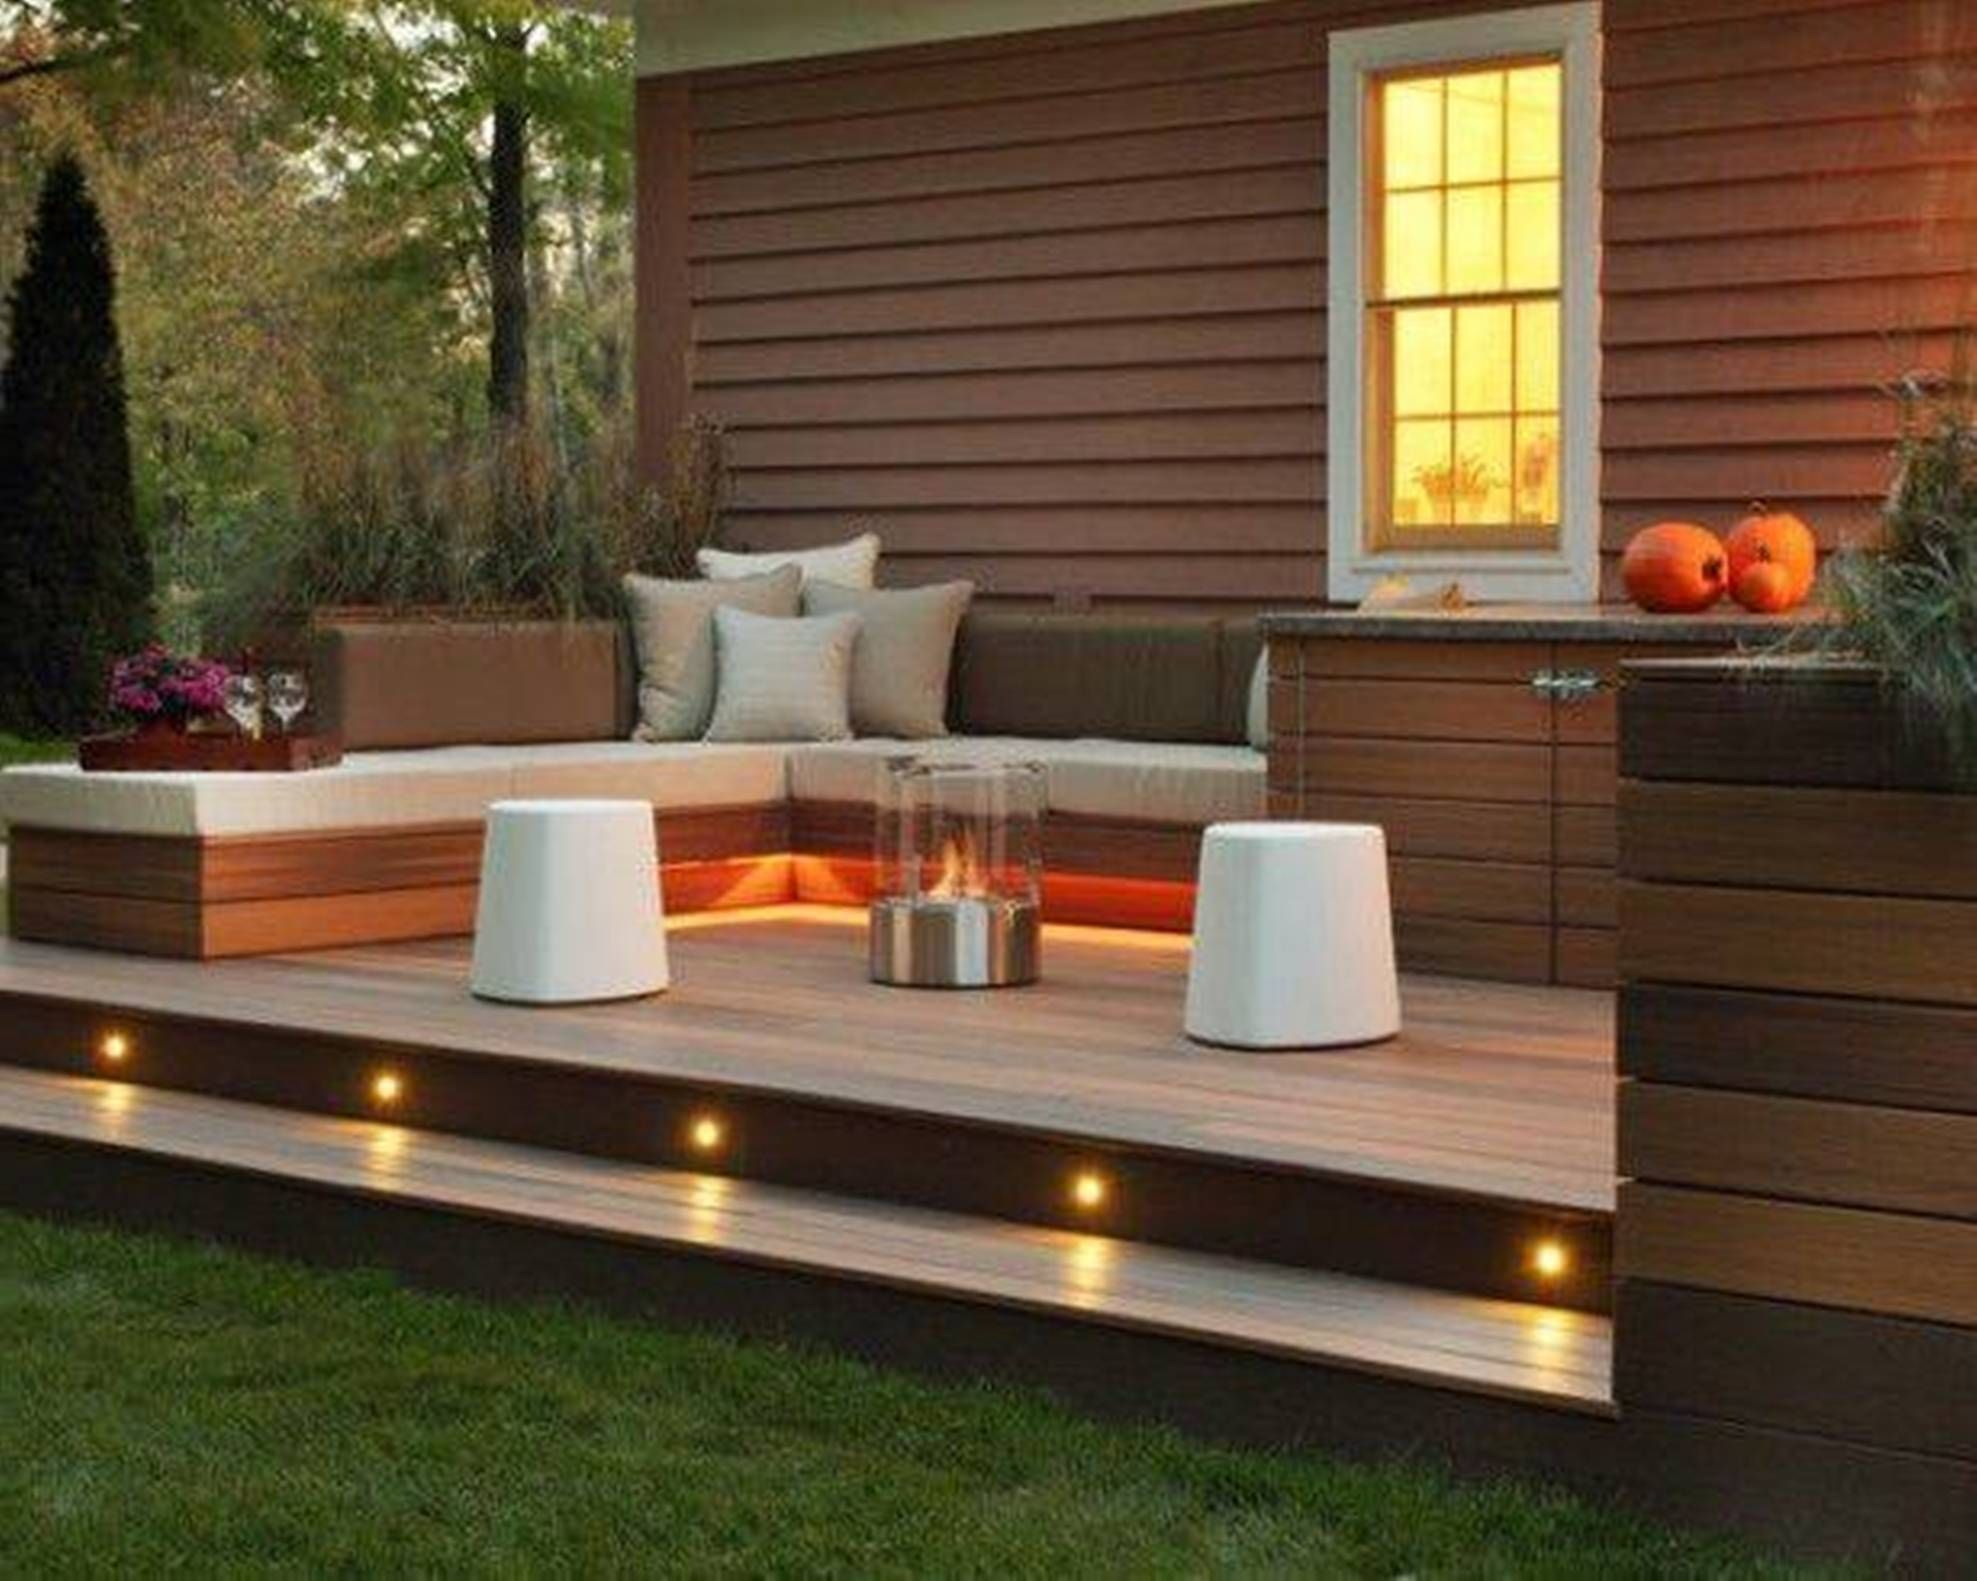 10 Some Of The Coolest Ways How To Craft Small Deck Ideas For